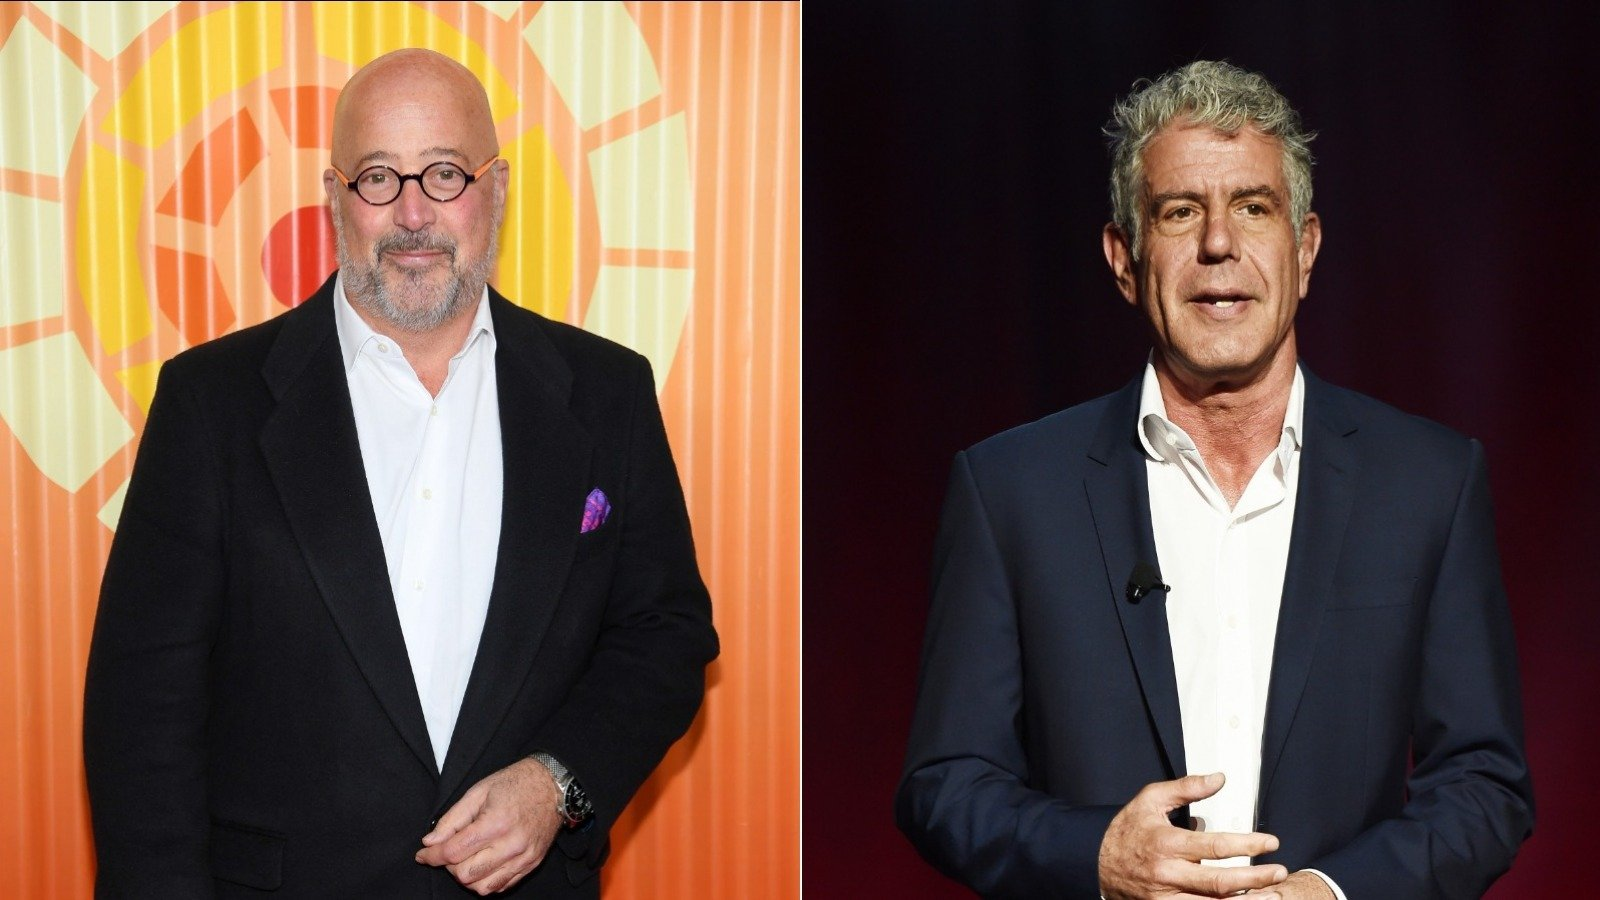 Andrew Zimmern Opens Up About His Relationship With Anthony Bourdain